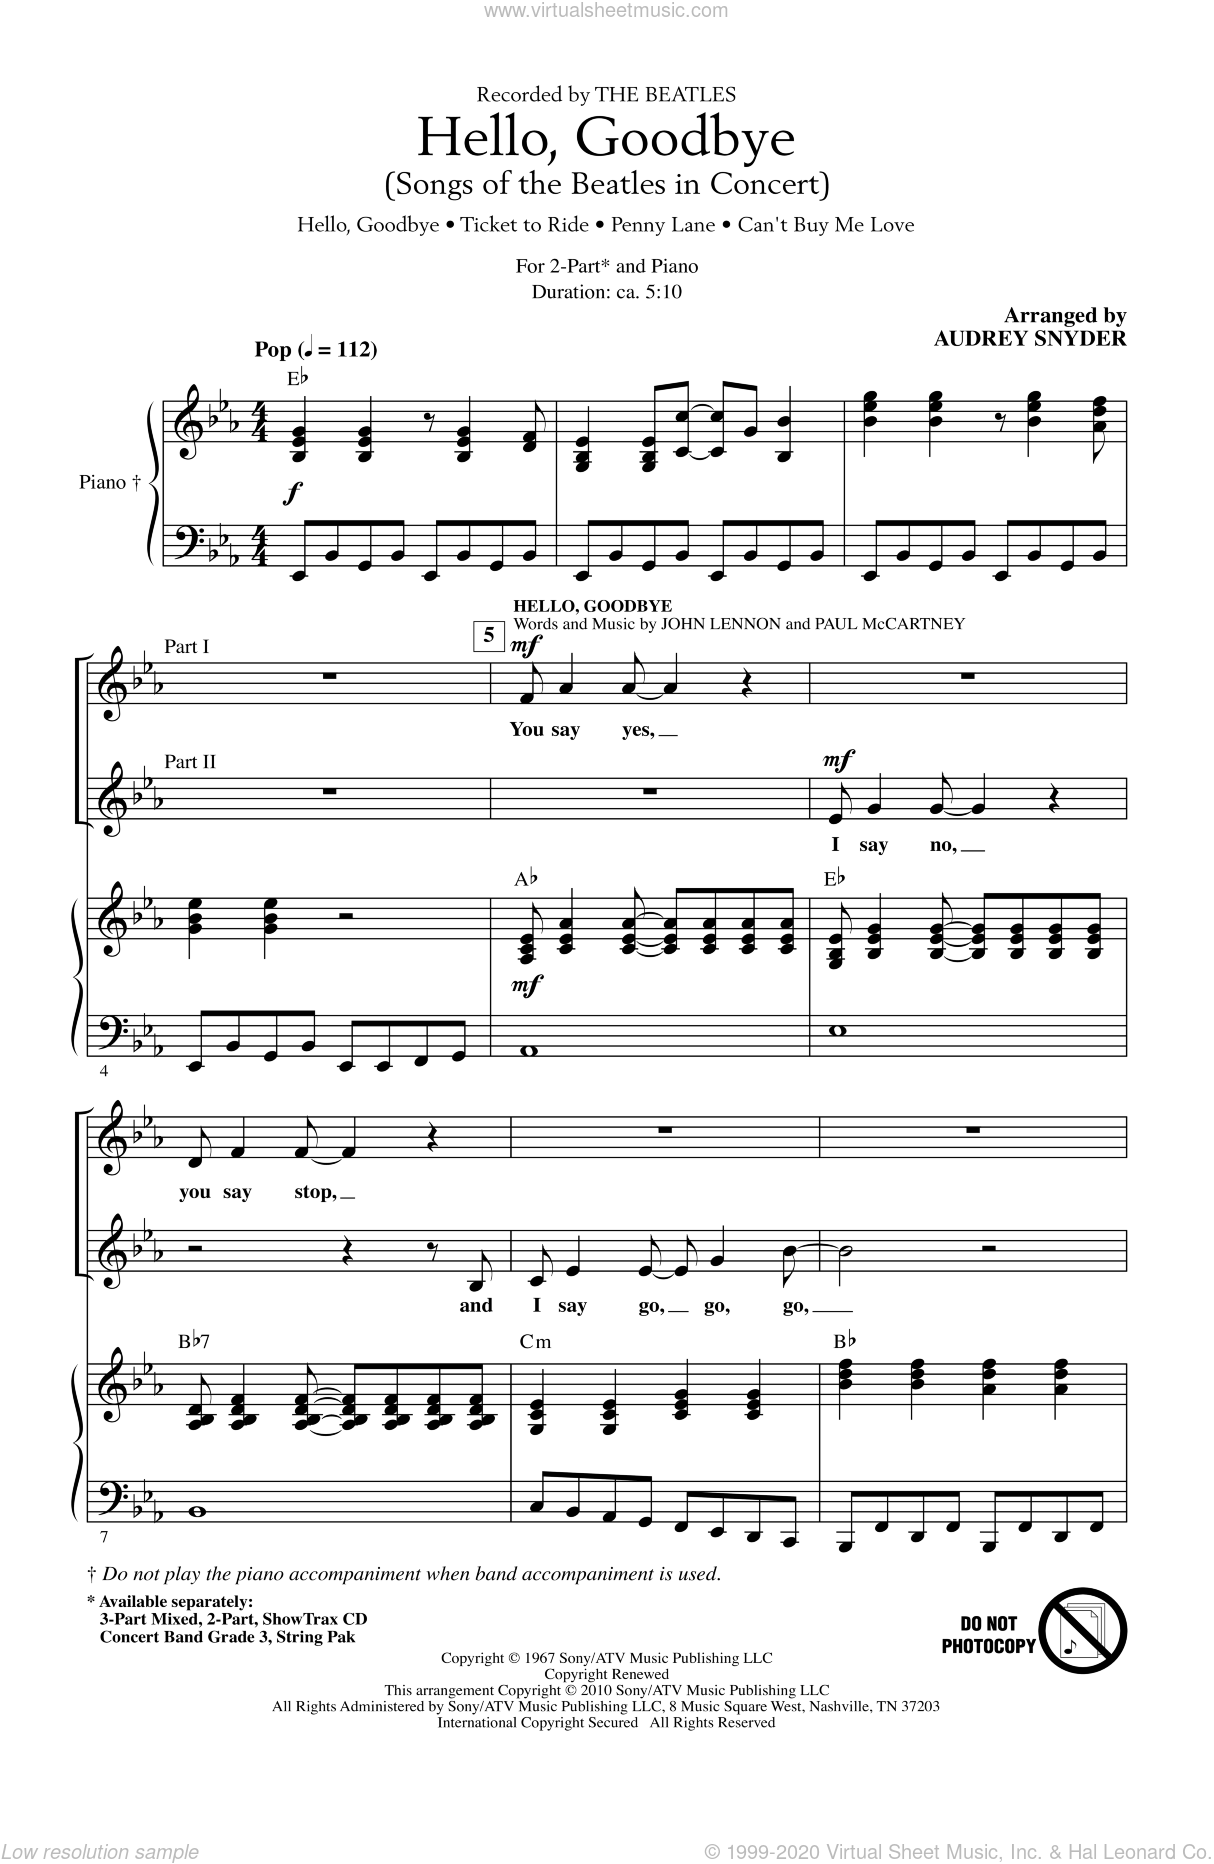 Hello, Goodbye (Songs Of The Beatles In Concert) sheet music for choir (2-Part) by The Beatles, Audrey Snyder, John Lennon and Paul McCartney, intermediate duet